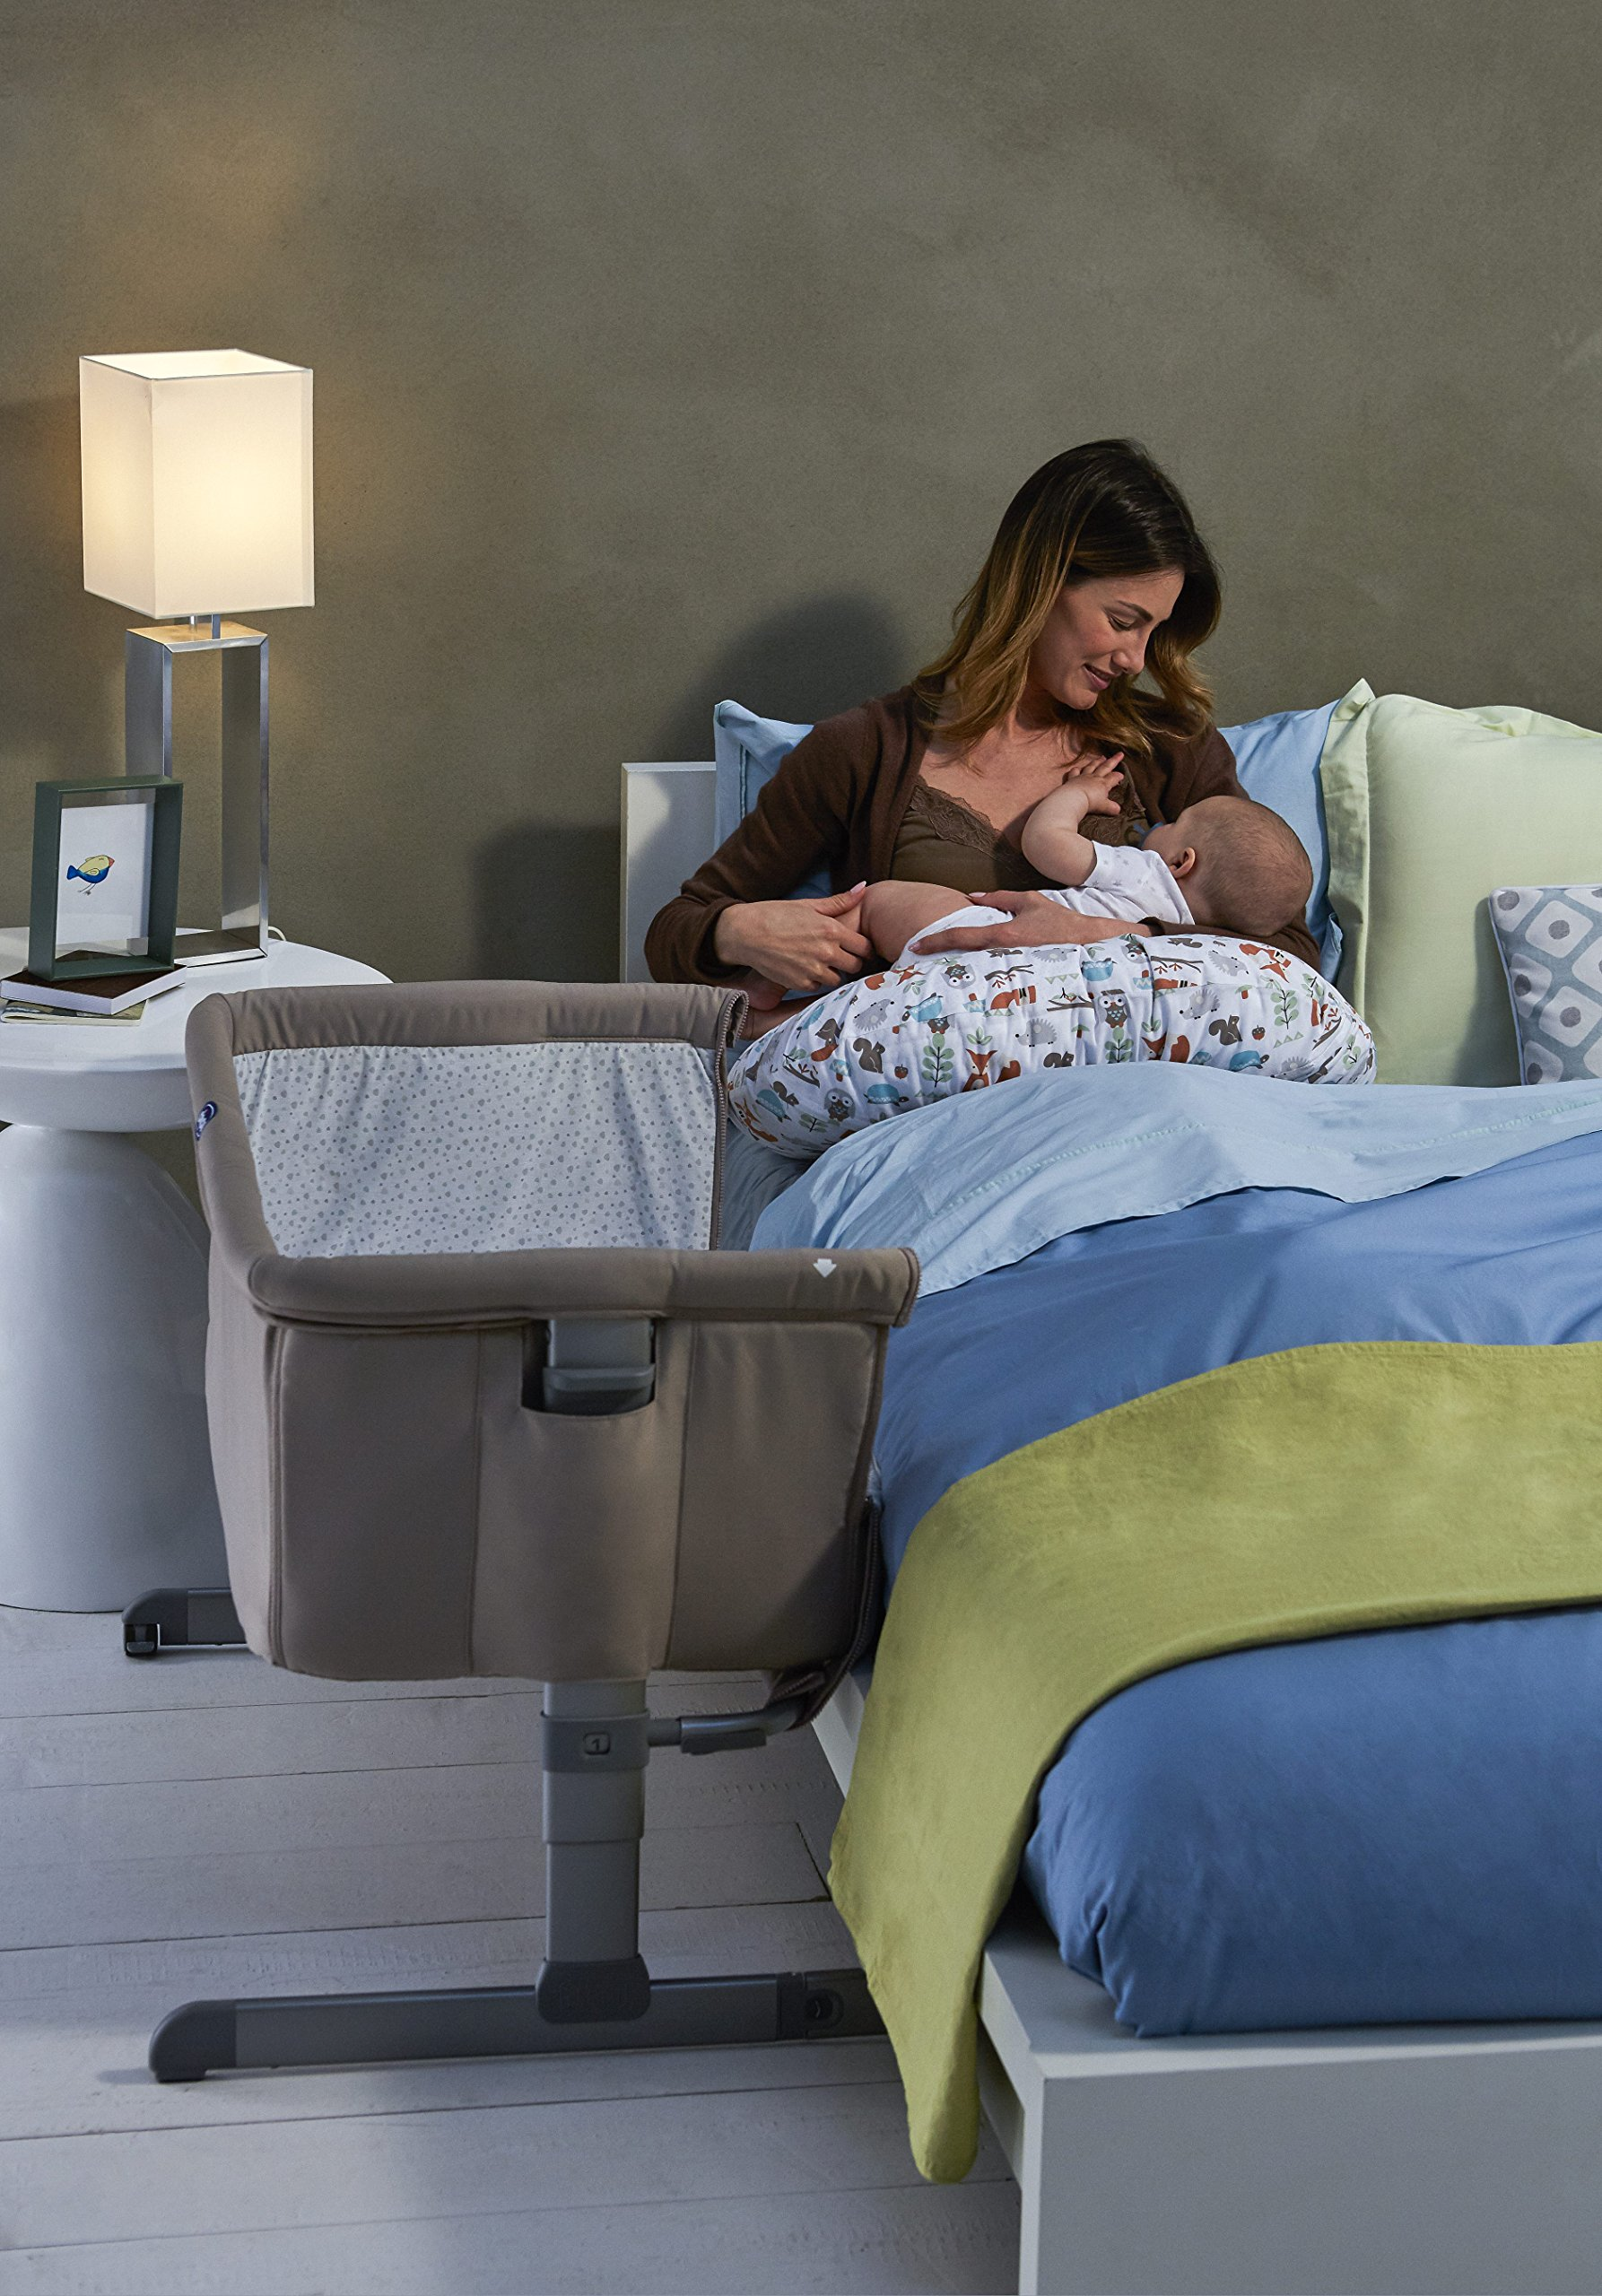 Chicco Next2me Side Sleeping Crib - Chick to Chick  Co-sleeping crib that promotes side-sleeping and allows you to sleep close to your child Can be used as a normal crib as baby grows.open size: 66/81 x 93 x 69 Uitable from birth to 6 months/9 kg or until baby can pull themselves into an upright position 3